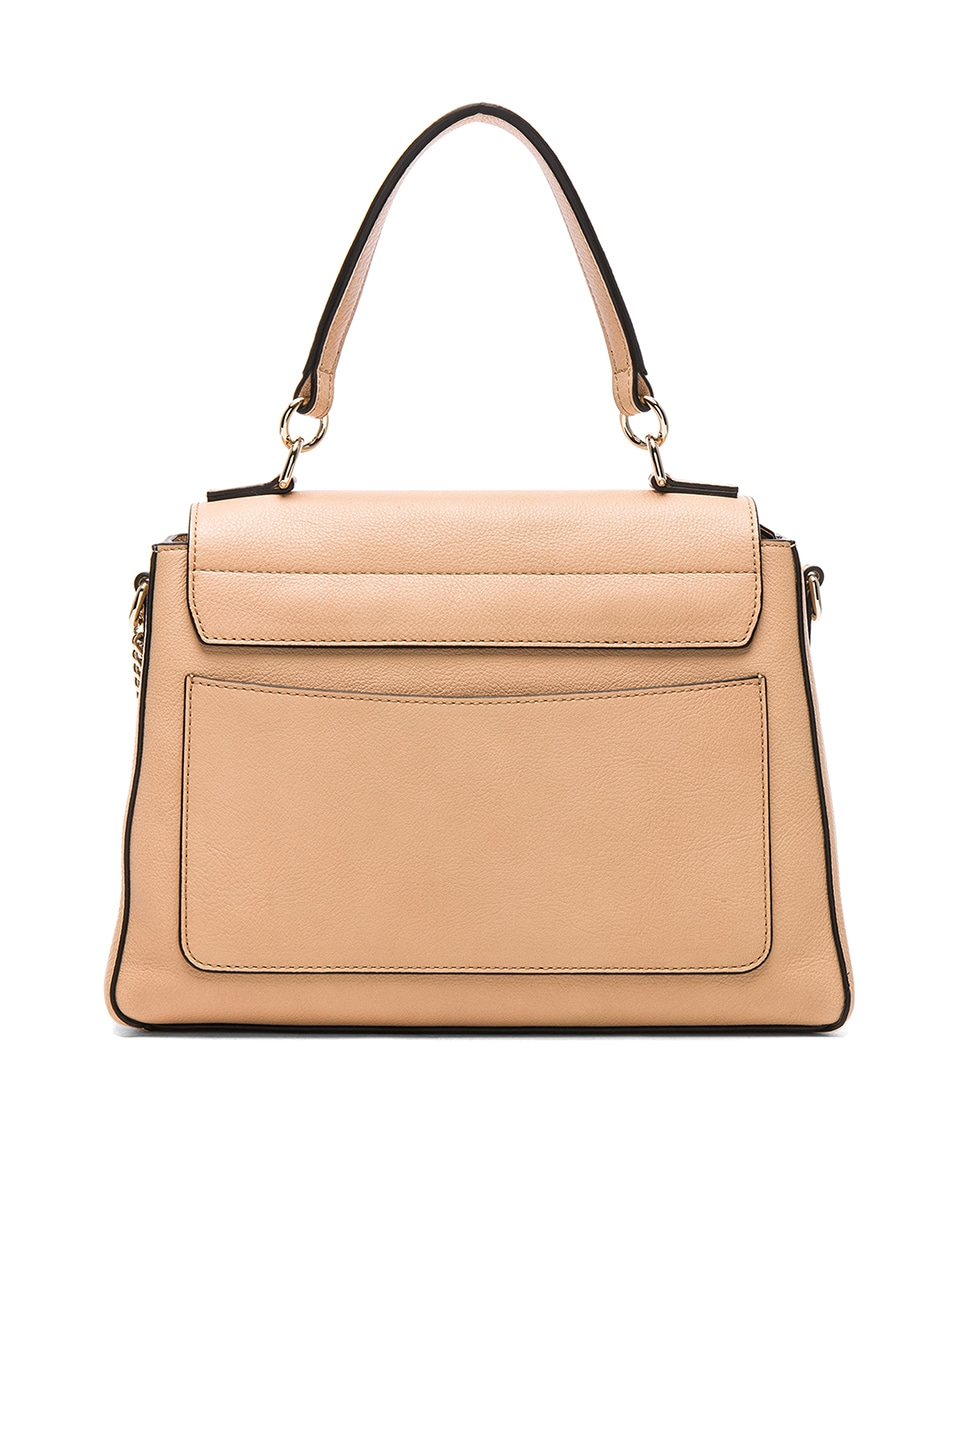 Image 3 of Chloe Small Faye Calfskin & Suede Day Bag in Blush Nude